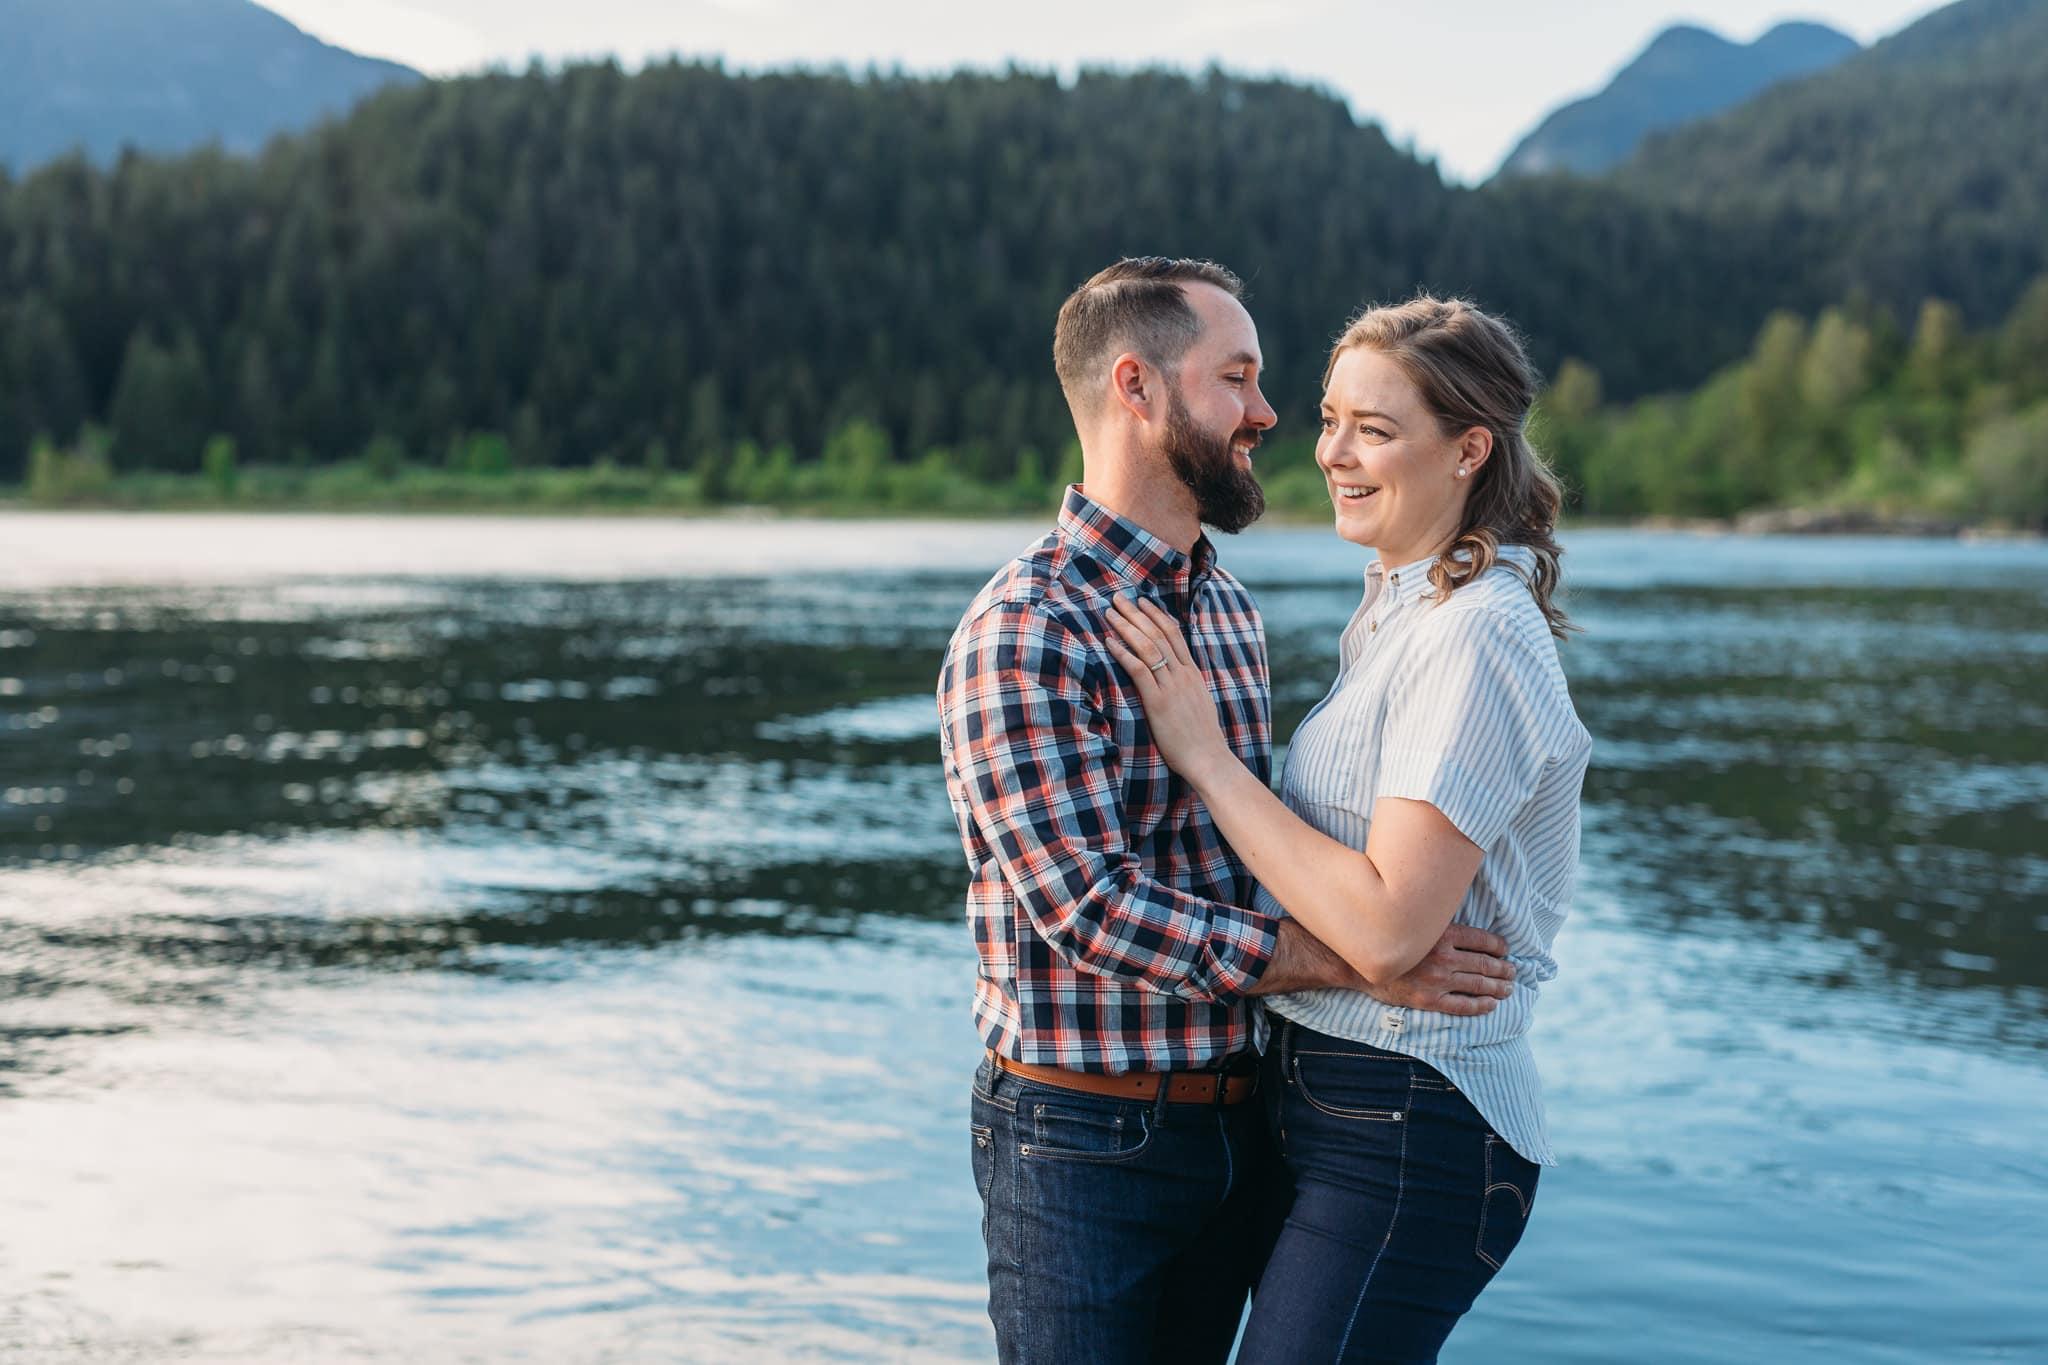 engagement session couple at pitt lake boat launch in pitt meadows